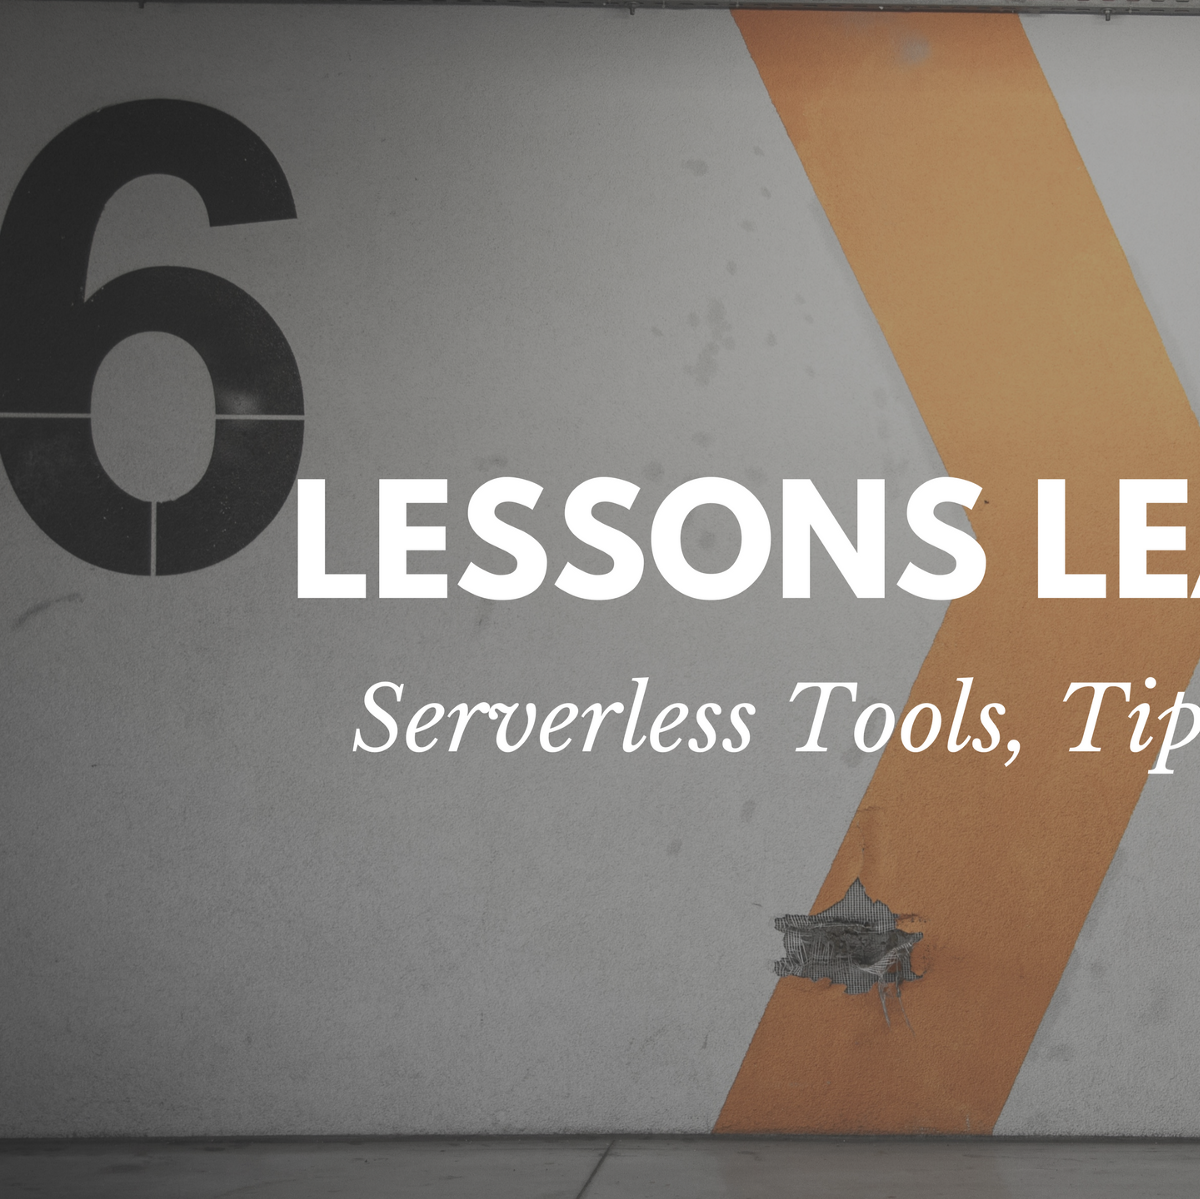 6 Lessons Learned from Going Serverless - A Cloud Guru